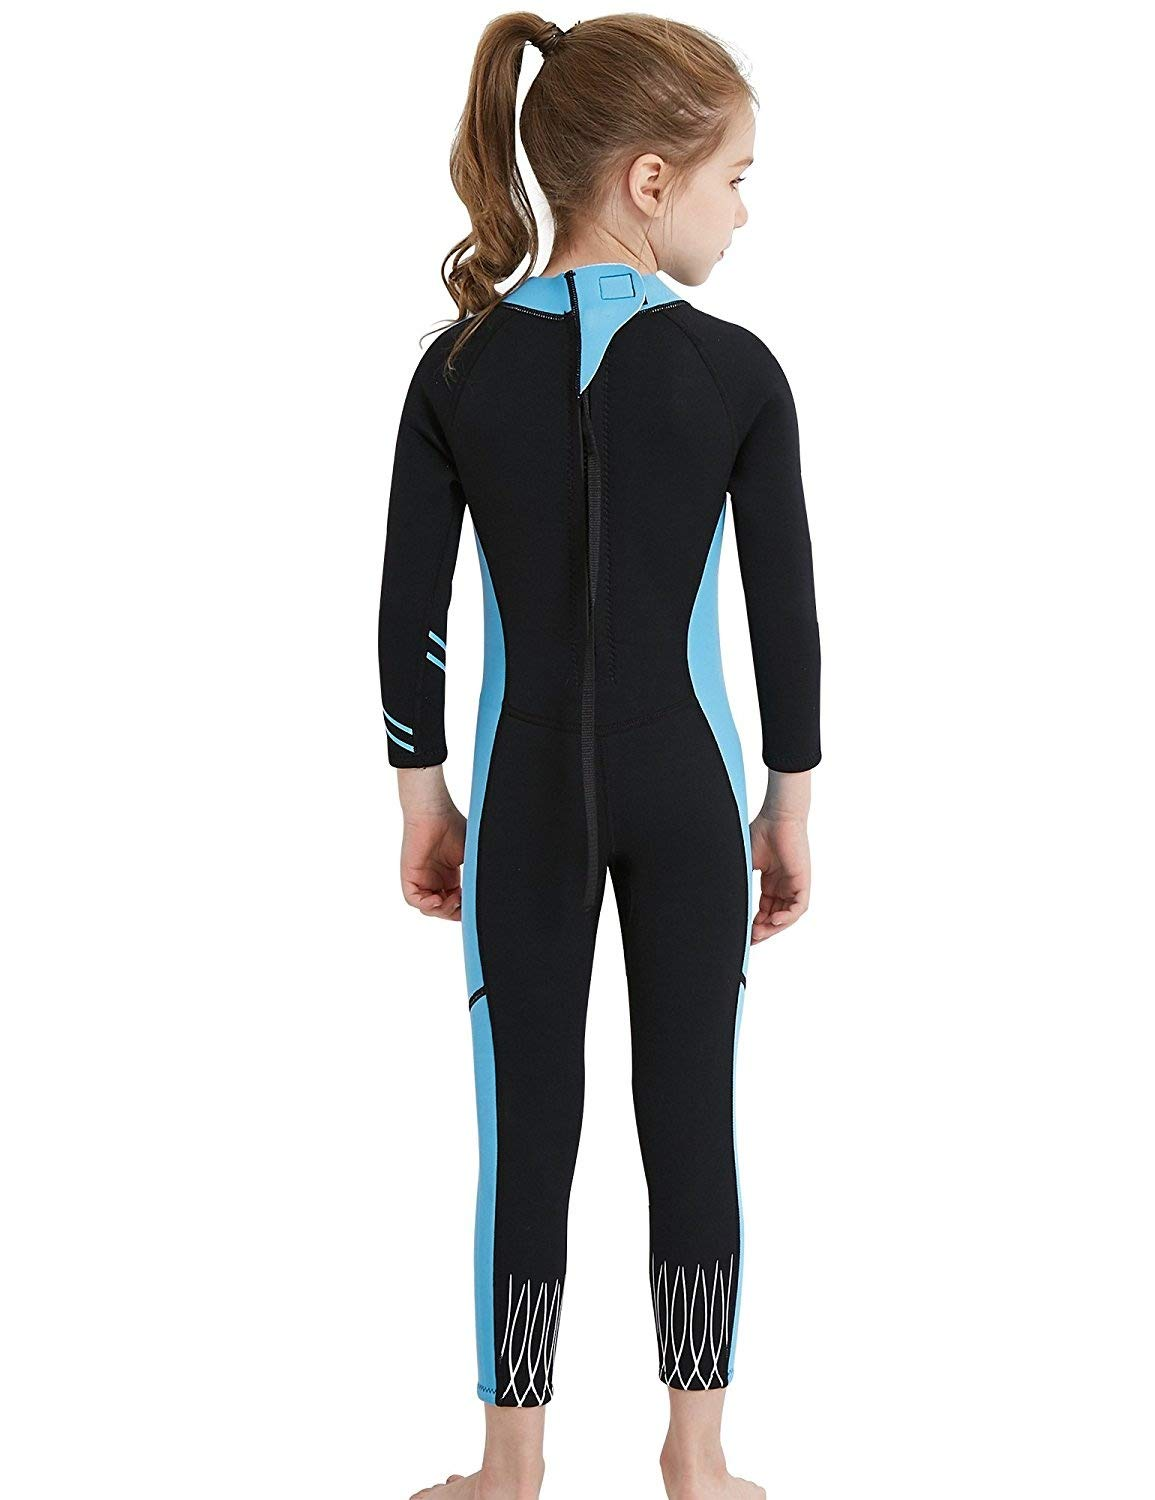 614b7d56ff Amazon.com   DIVE   SAIL Kids Wetsuit 2.5mm Neoprene Keep Warm for Diving  Swimming Canoeing UV Protection   Sports   Outdoors